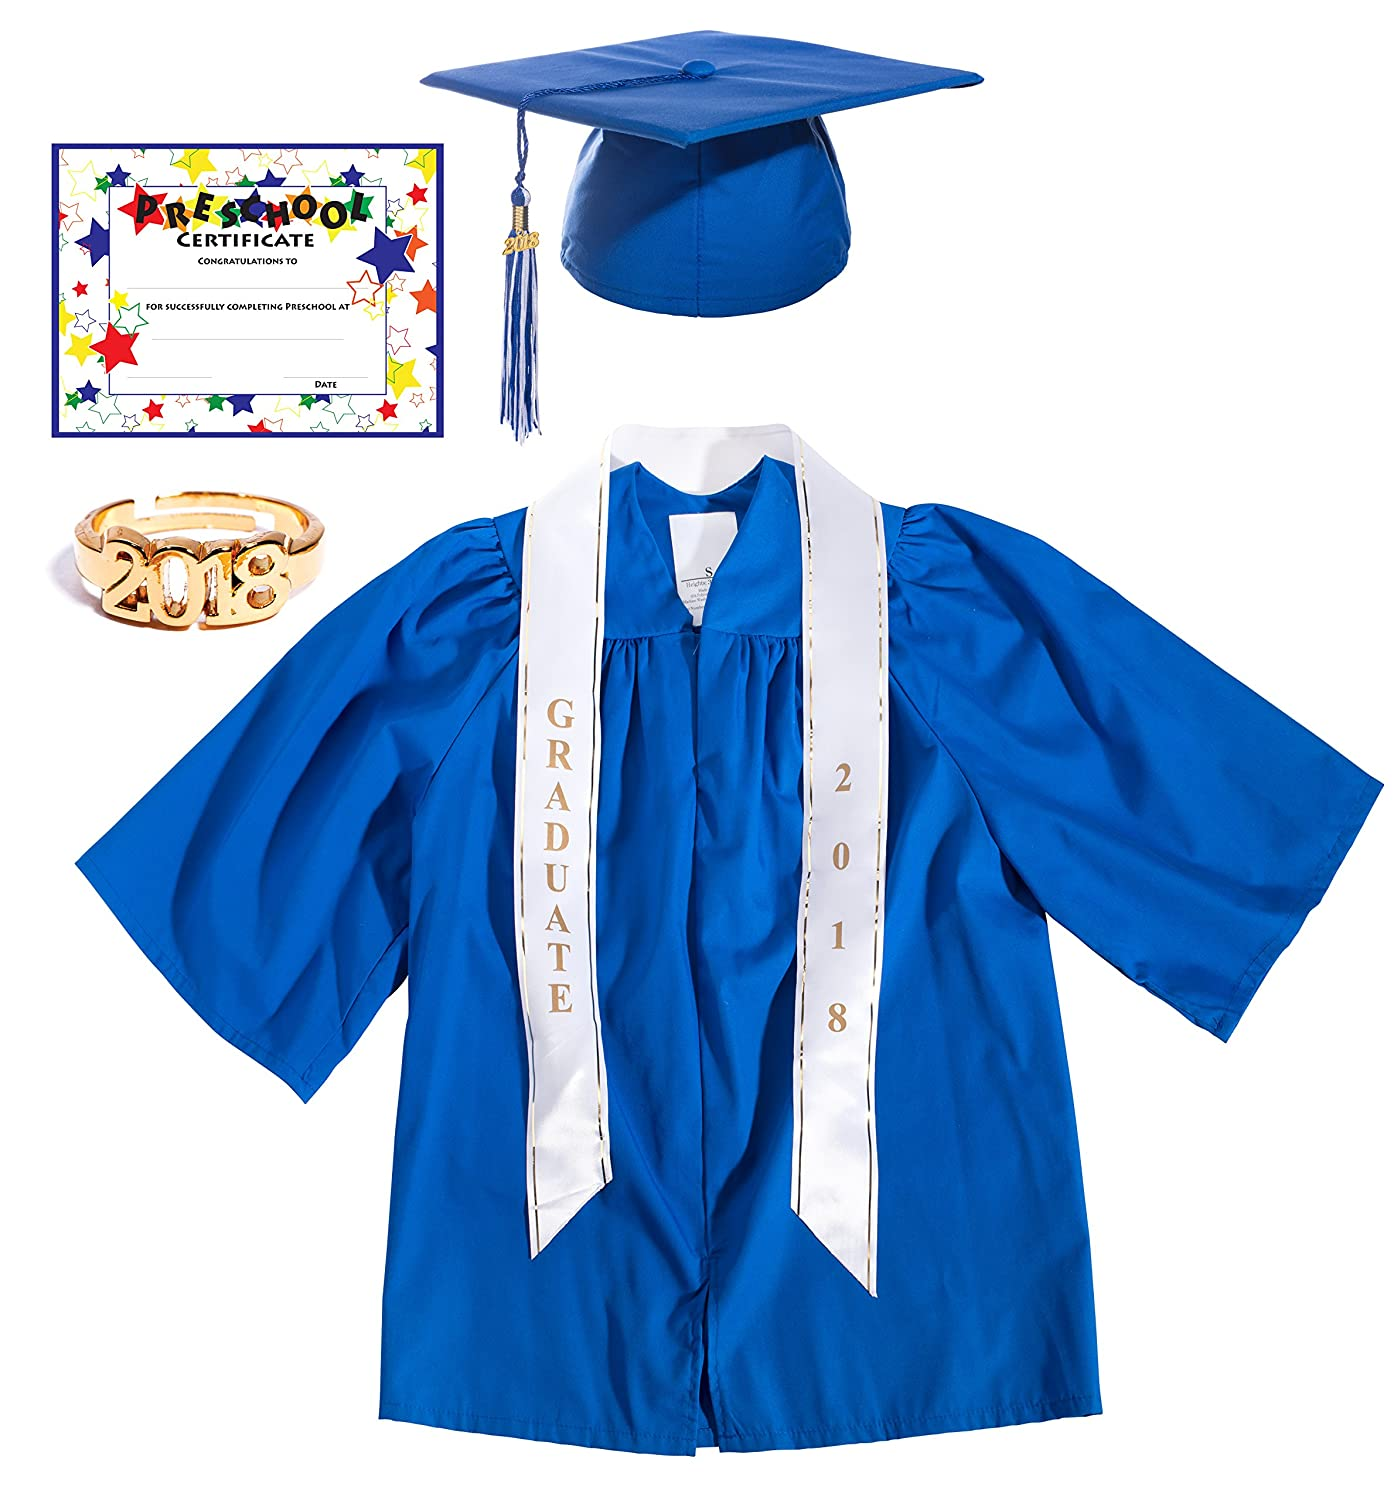 Amazon.com: Preschool Graduation Cap, Gown, Tassel, Sash, Ring ...